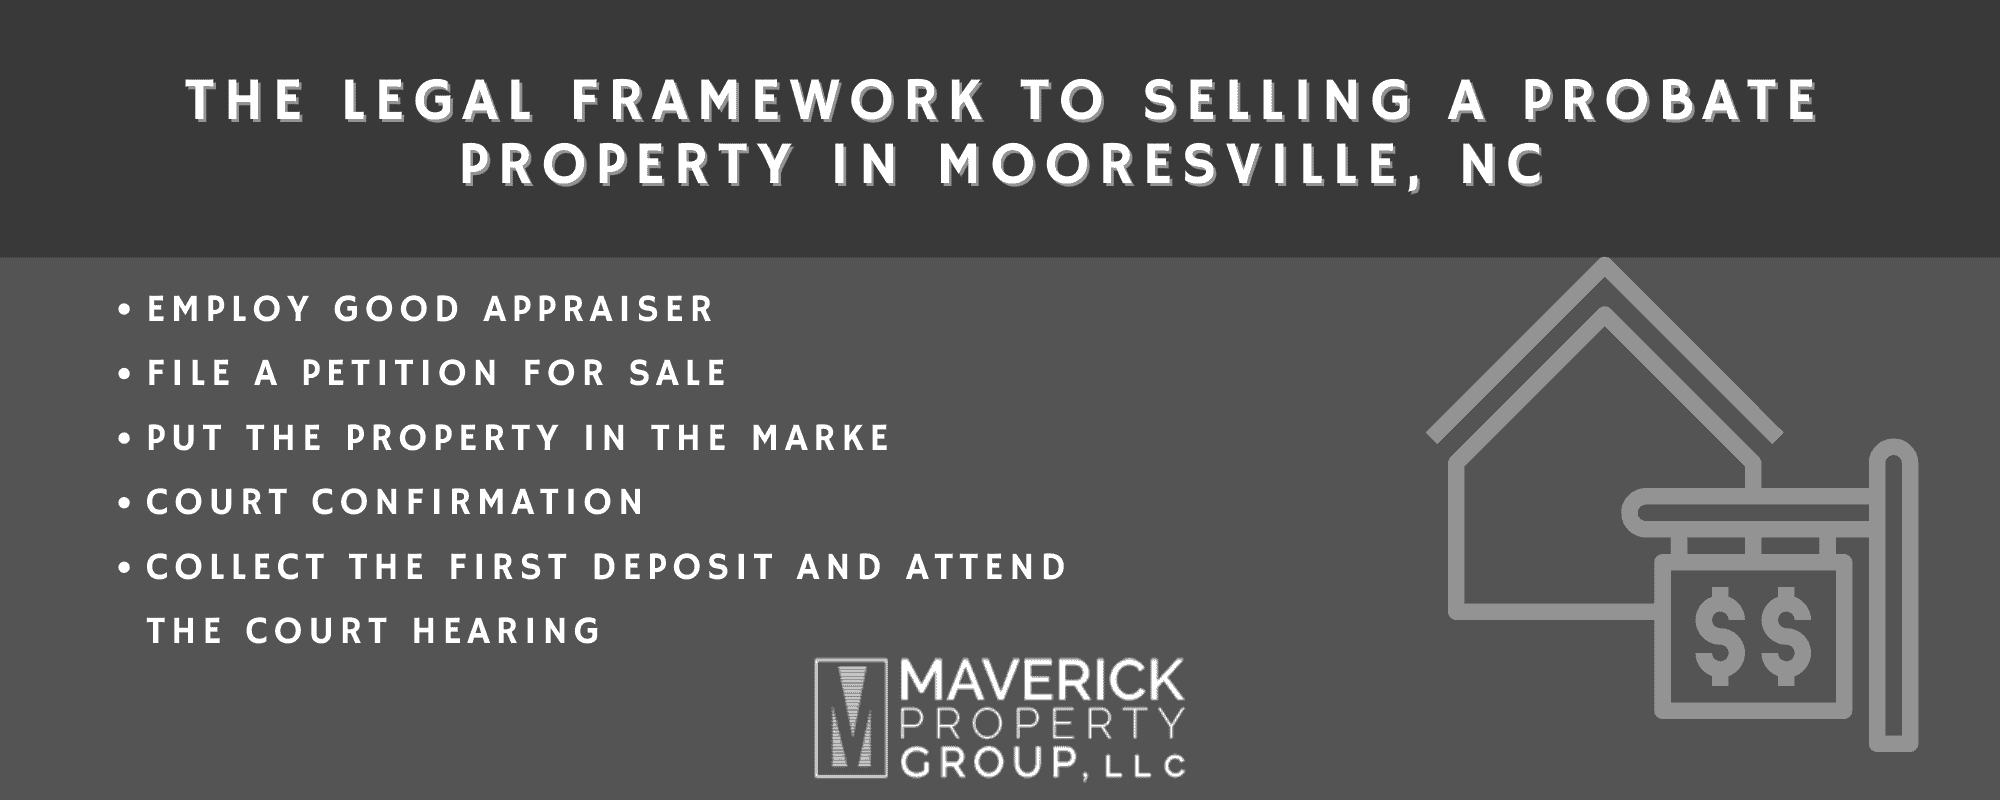 The Legal Framework to Selling A Probate Property in Mooresville, NC